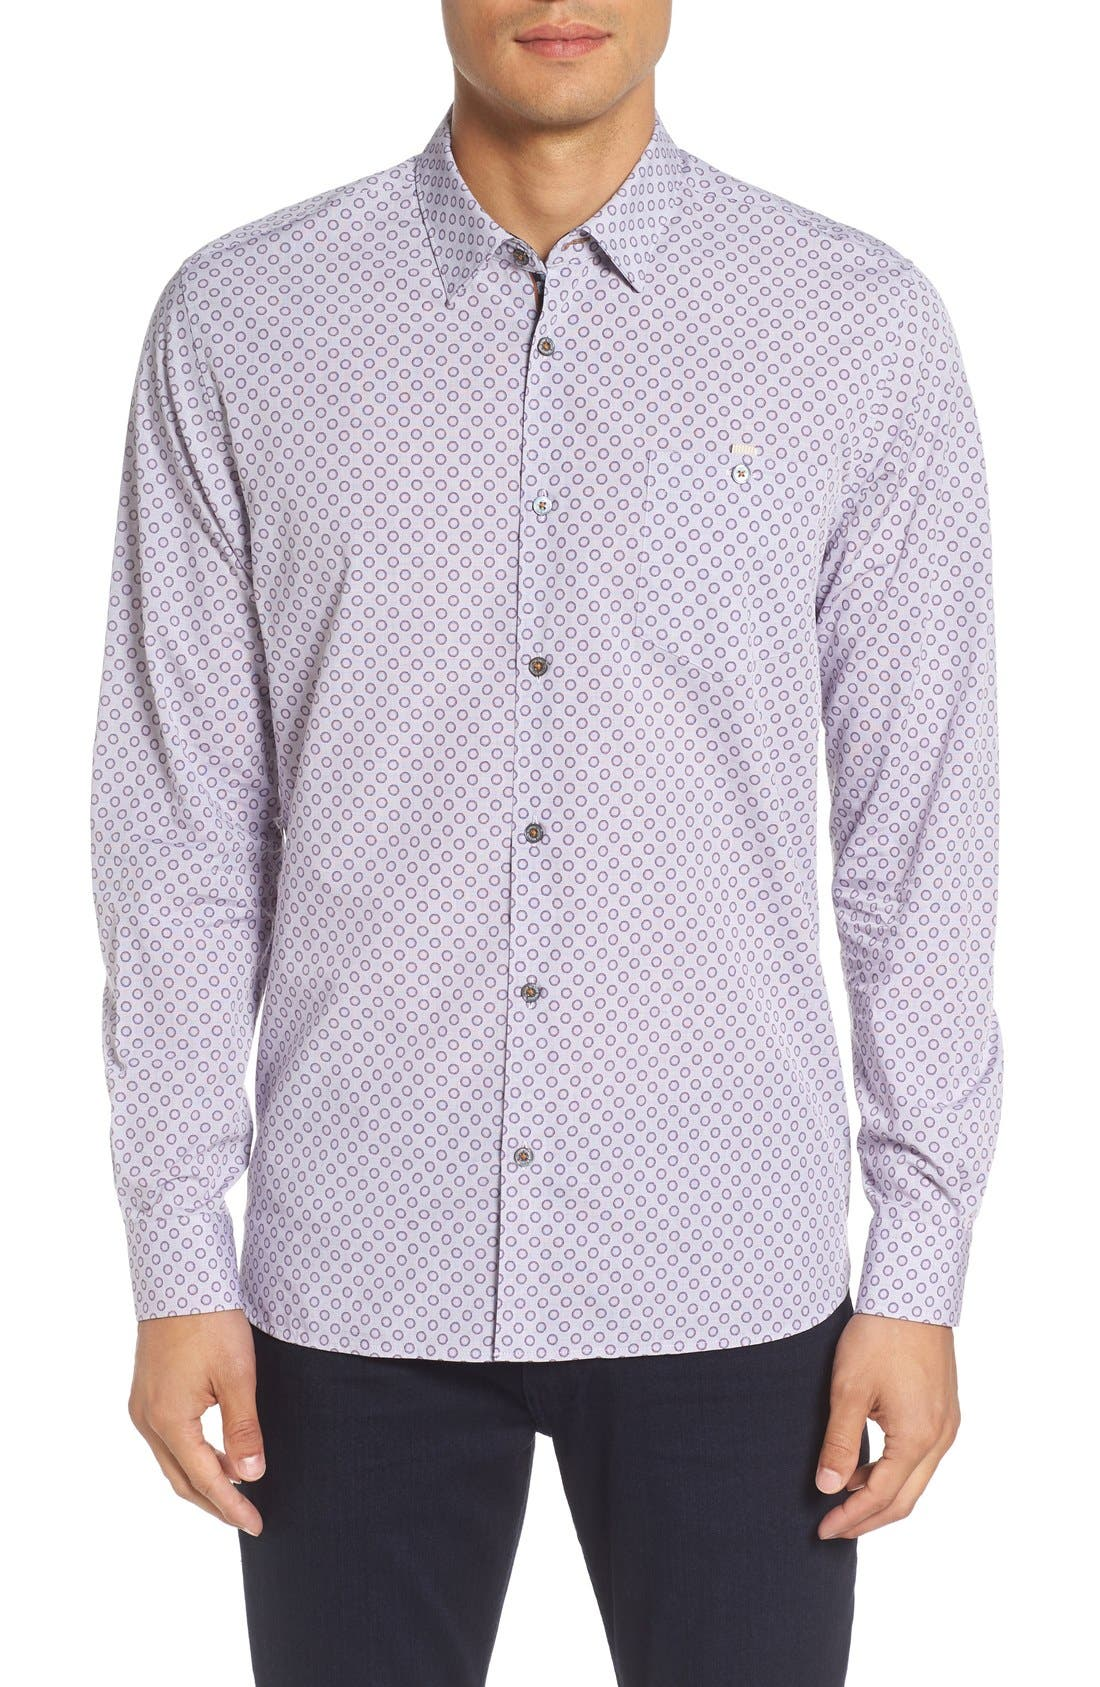 TED BAKER LONDON,                             'Thegril' Trim Fit Print Sport Shirt,                             Main thumbnail 1, color,                             510